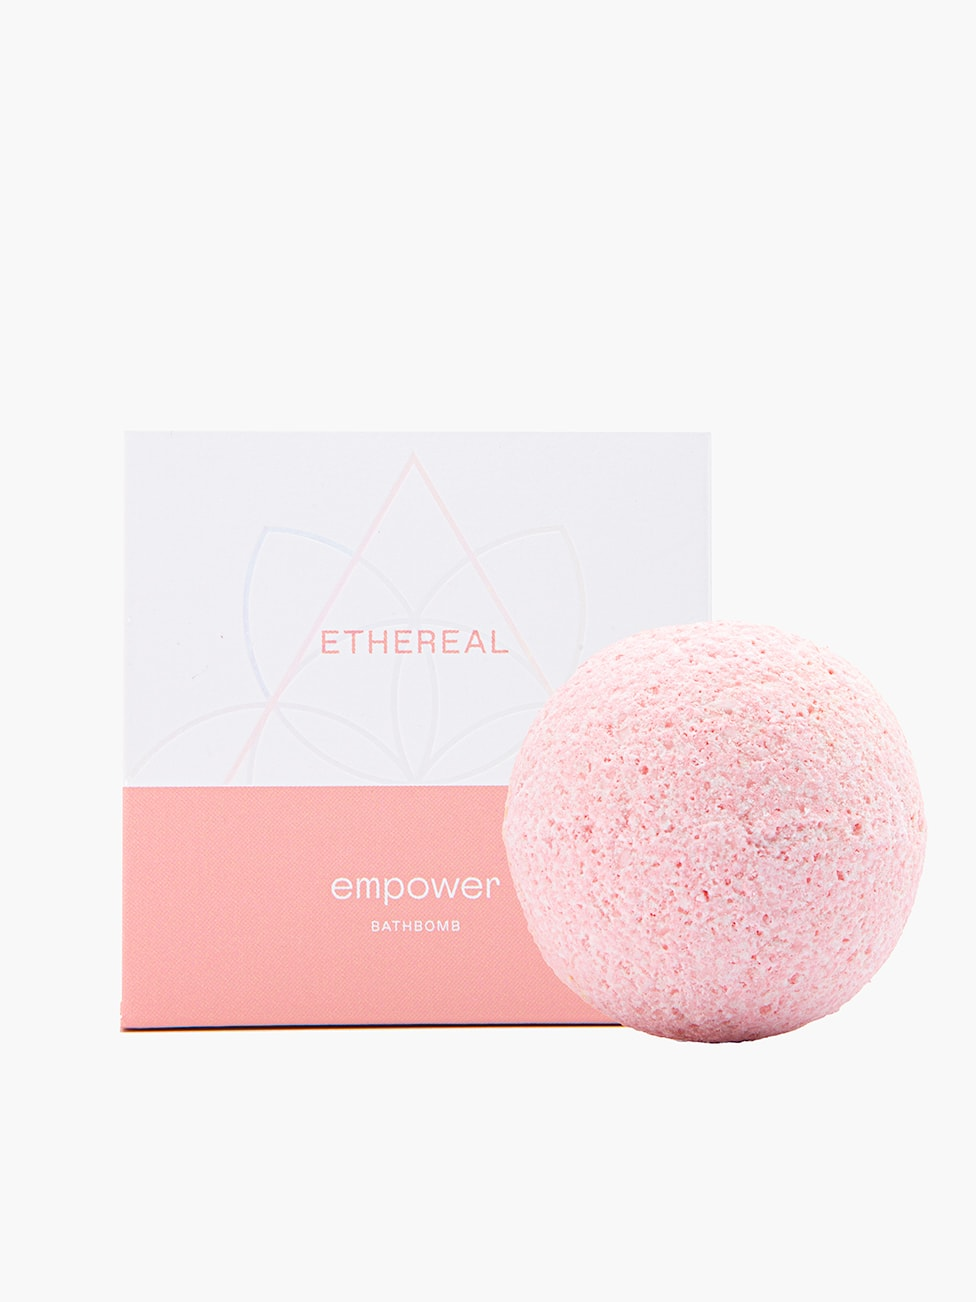 Empower_Bathbomb_Package_Ethereal_Dermocosmetics_Skincare_Handmade_Greek_Products